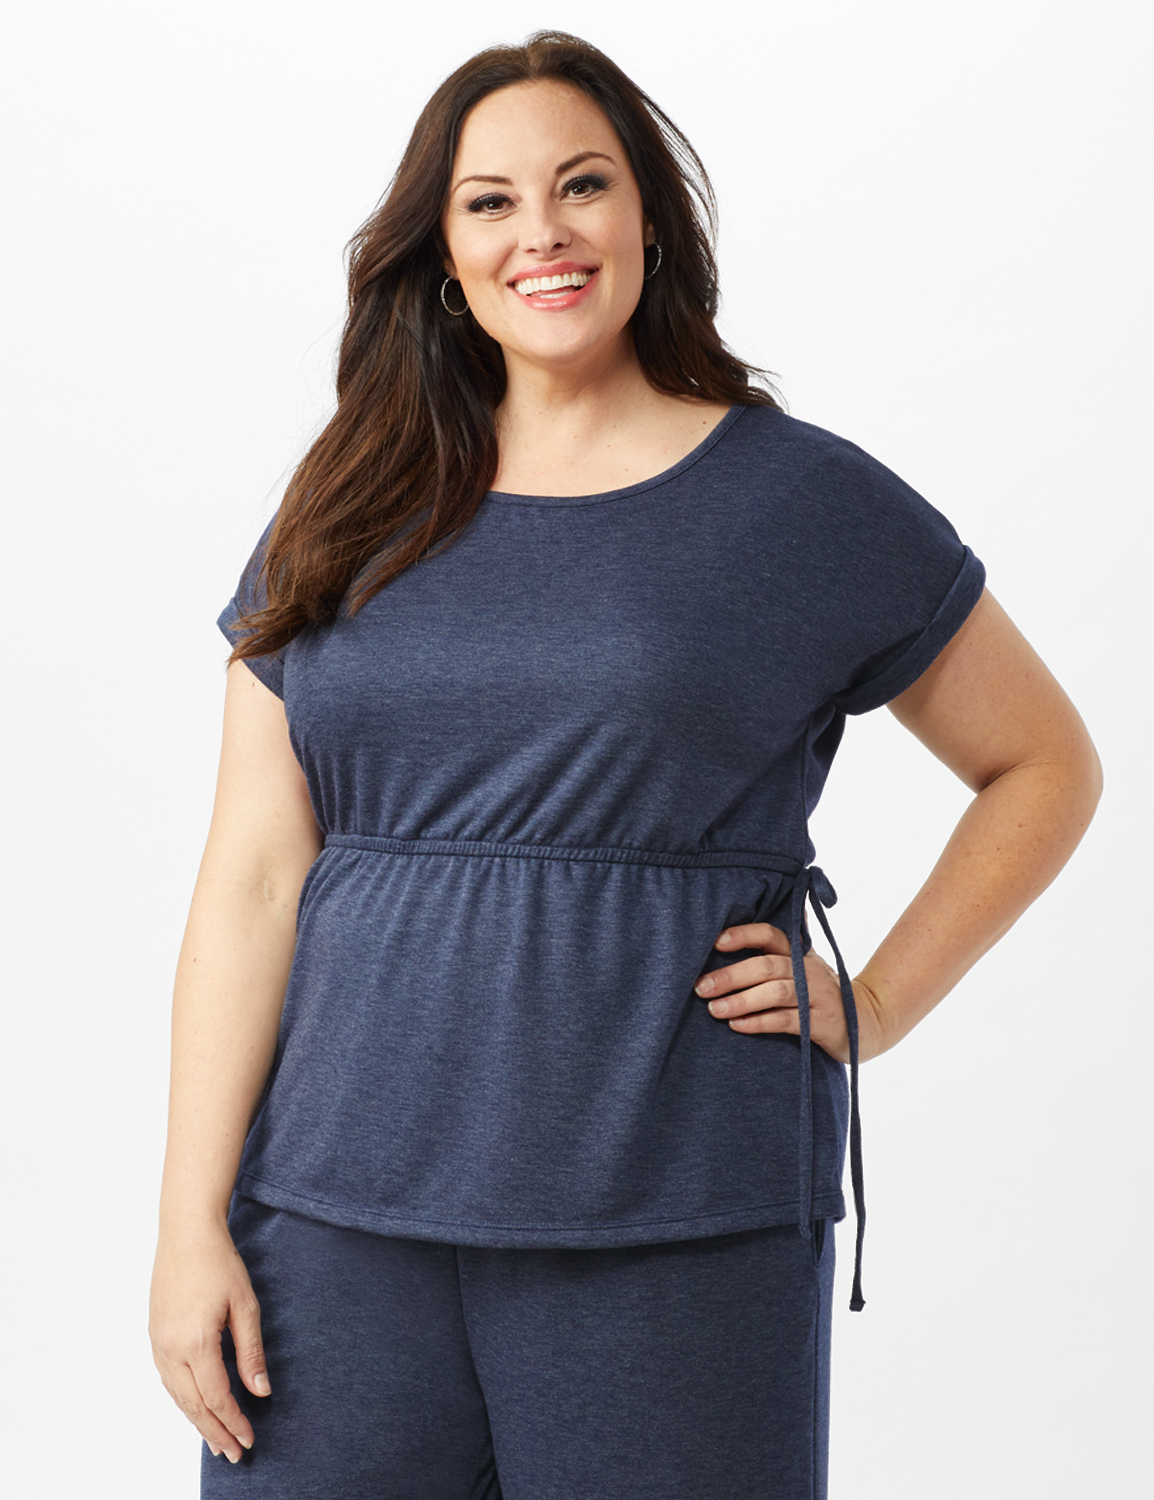 Cinch Waist Heathered Knit Top - Plus -Blue - Front